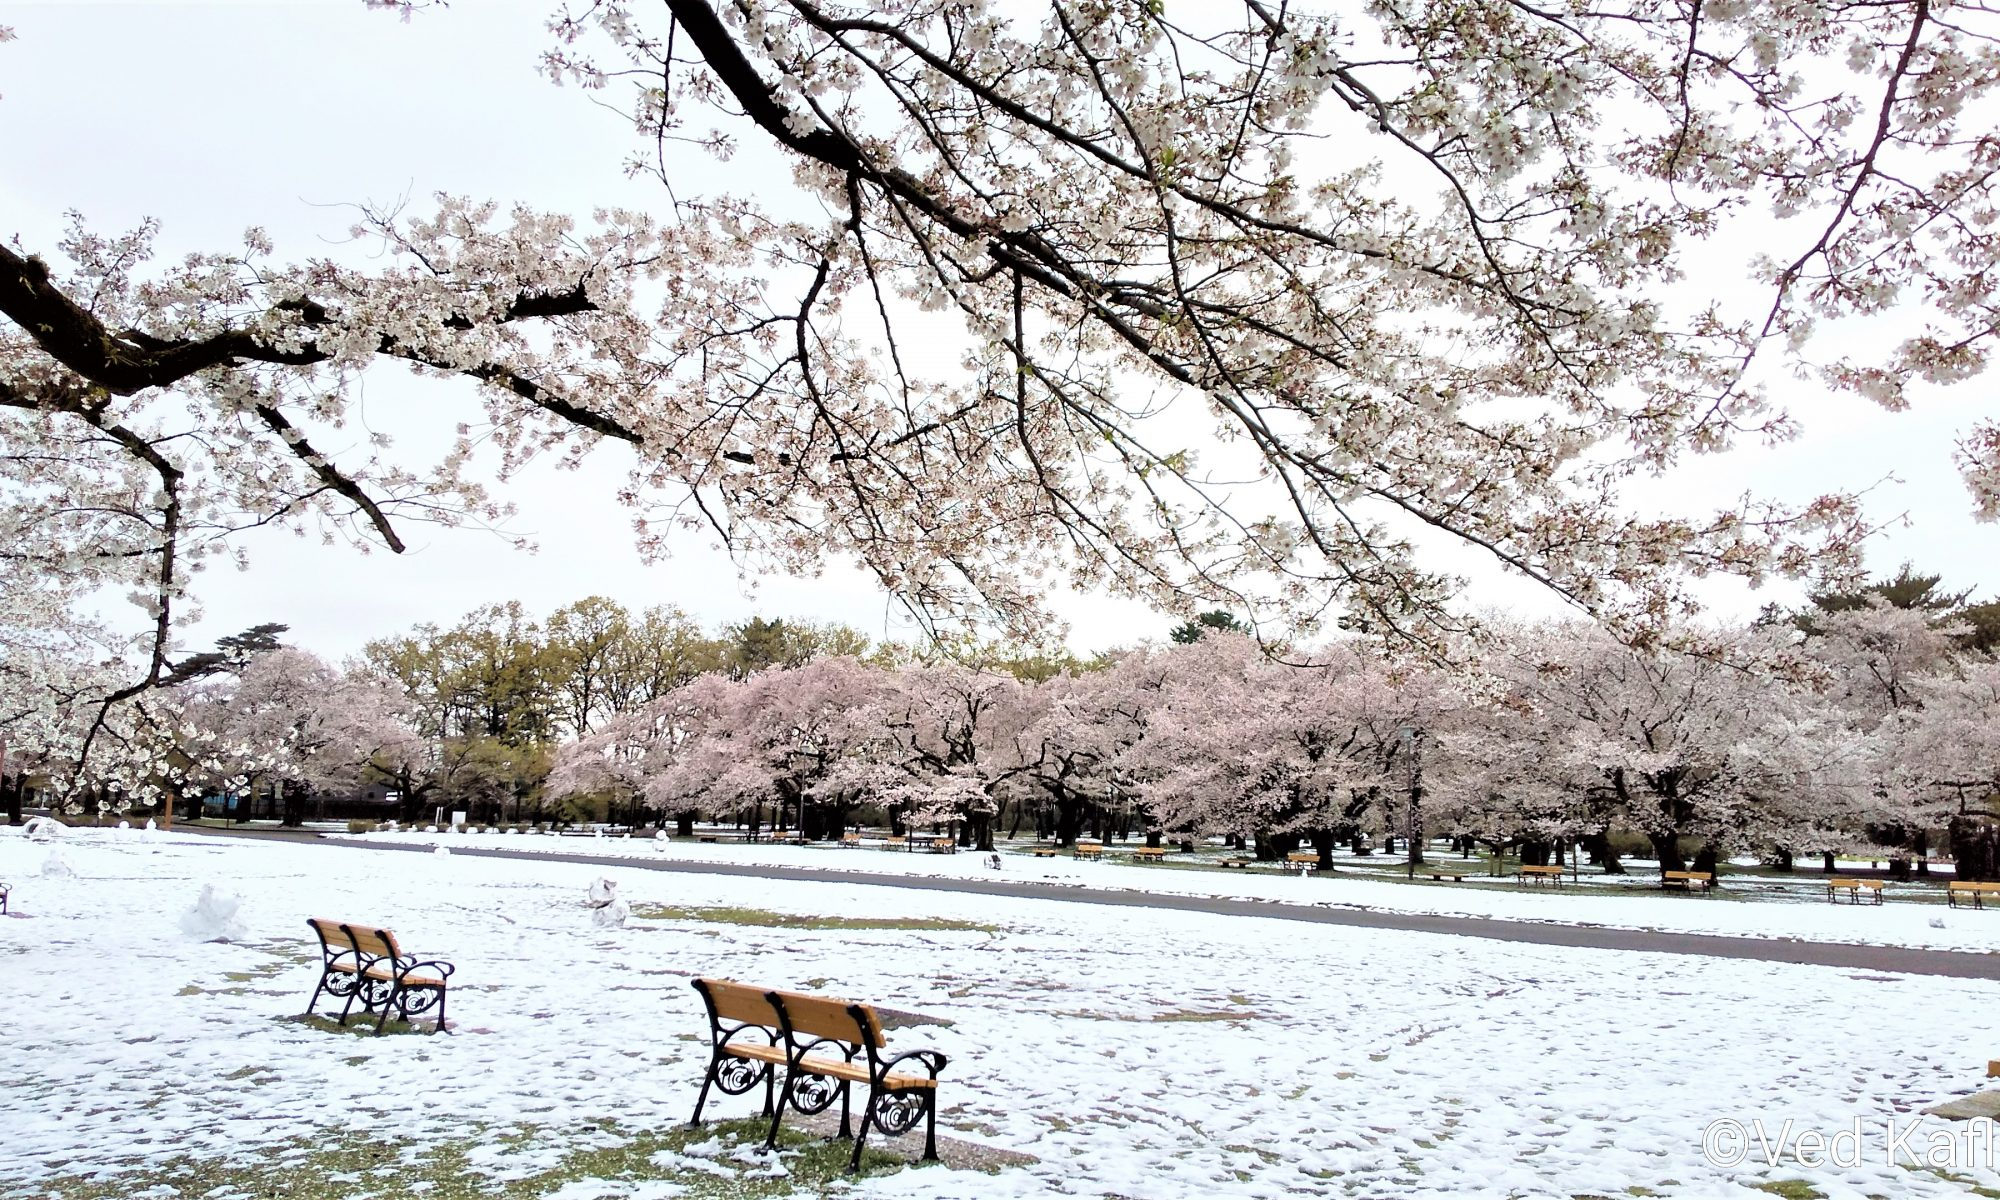 Cherry blossoms on trees, snow on ground